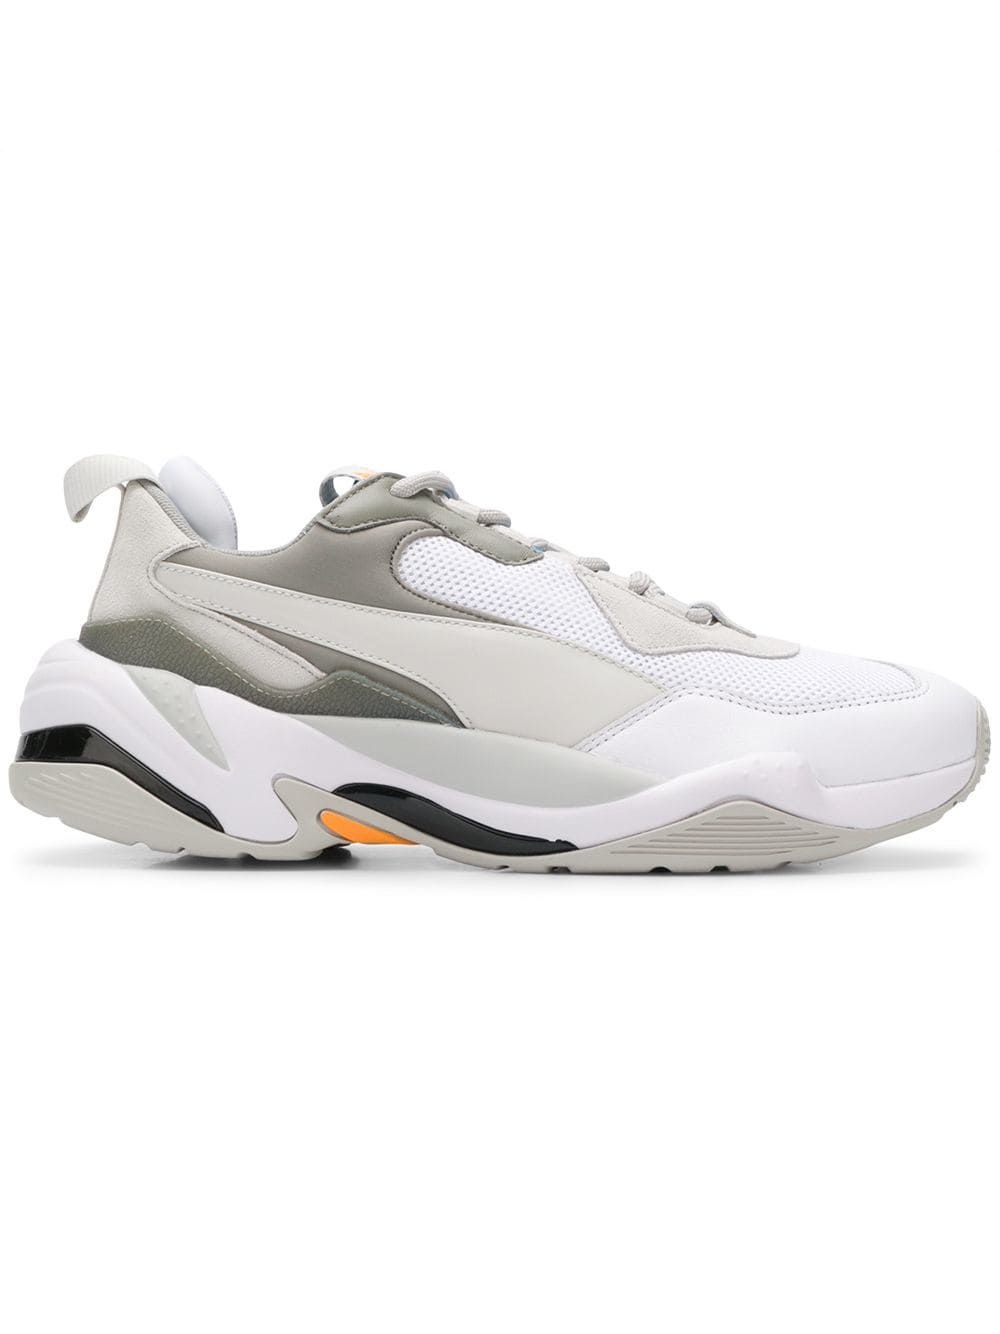 Puma Thunder Spectra Sneakers in 2019 | Nike shoes outlet